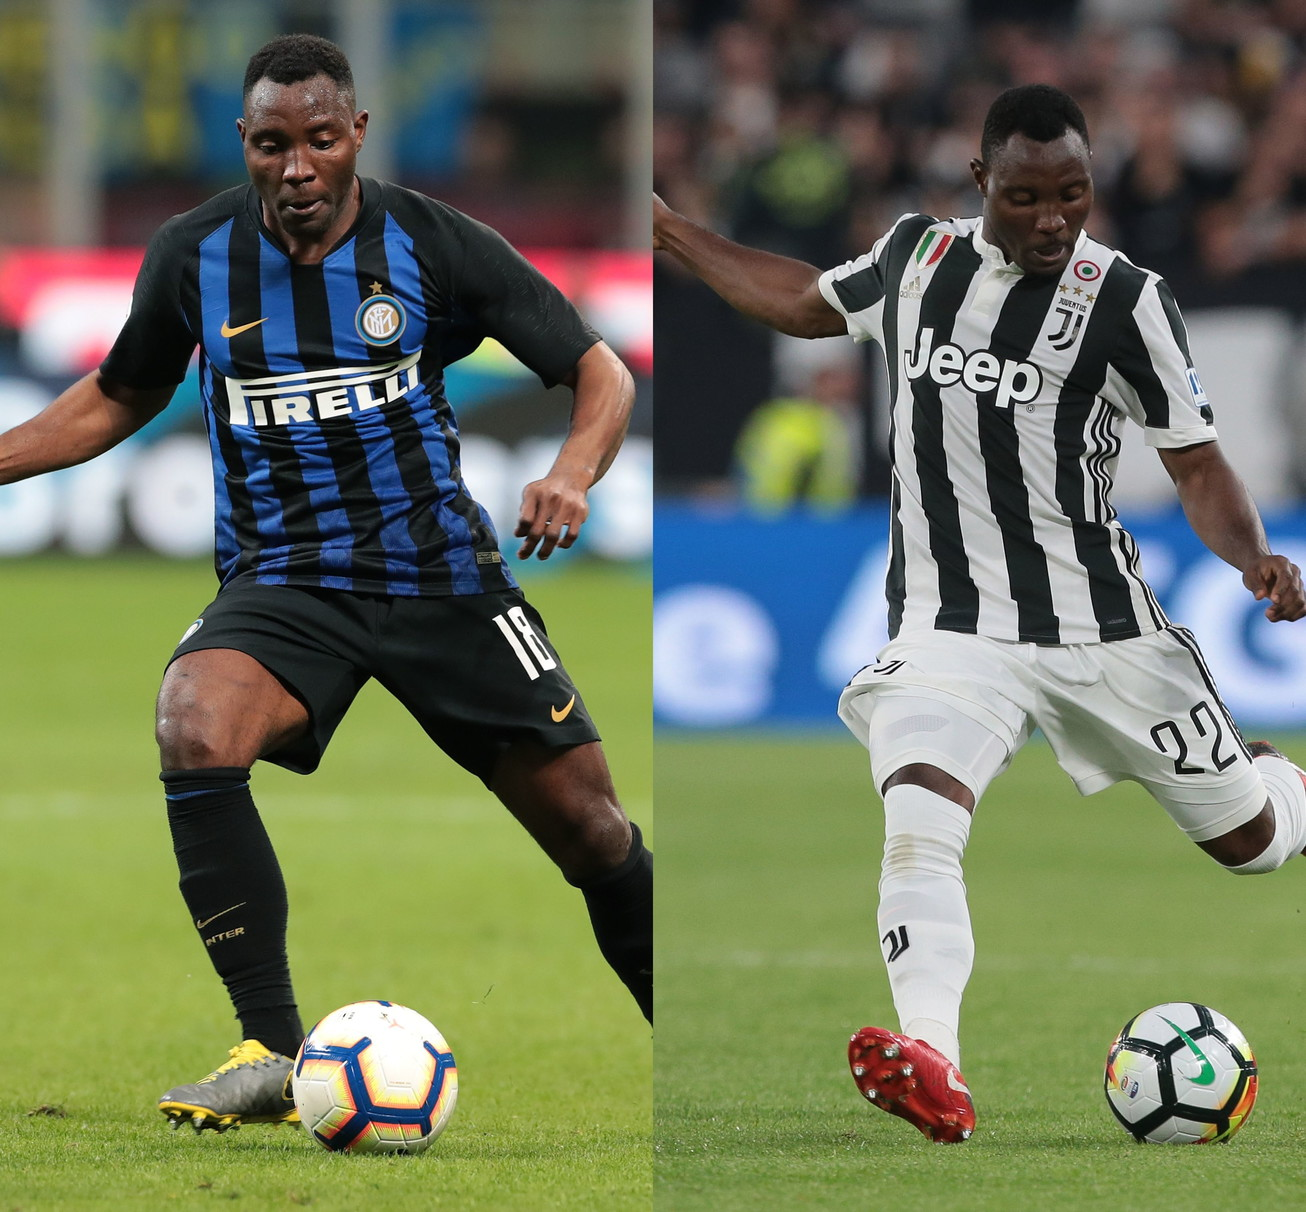 Kwadwo Asamoah: Juve 2012-2018, poi all'Inter